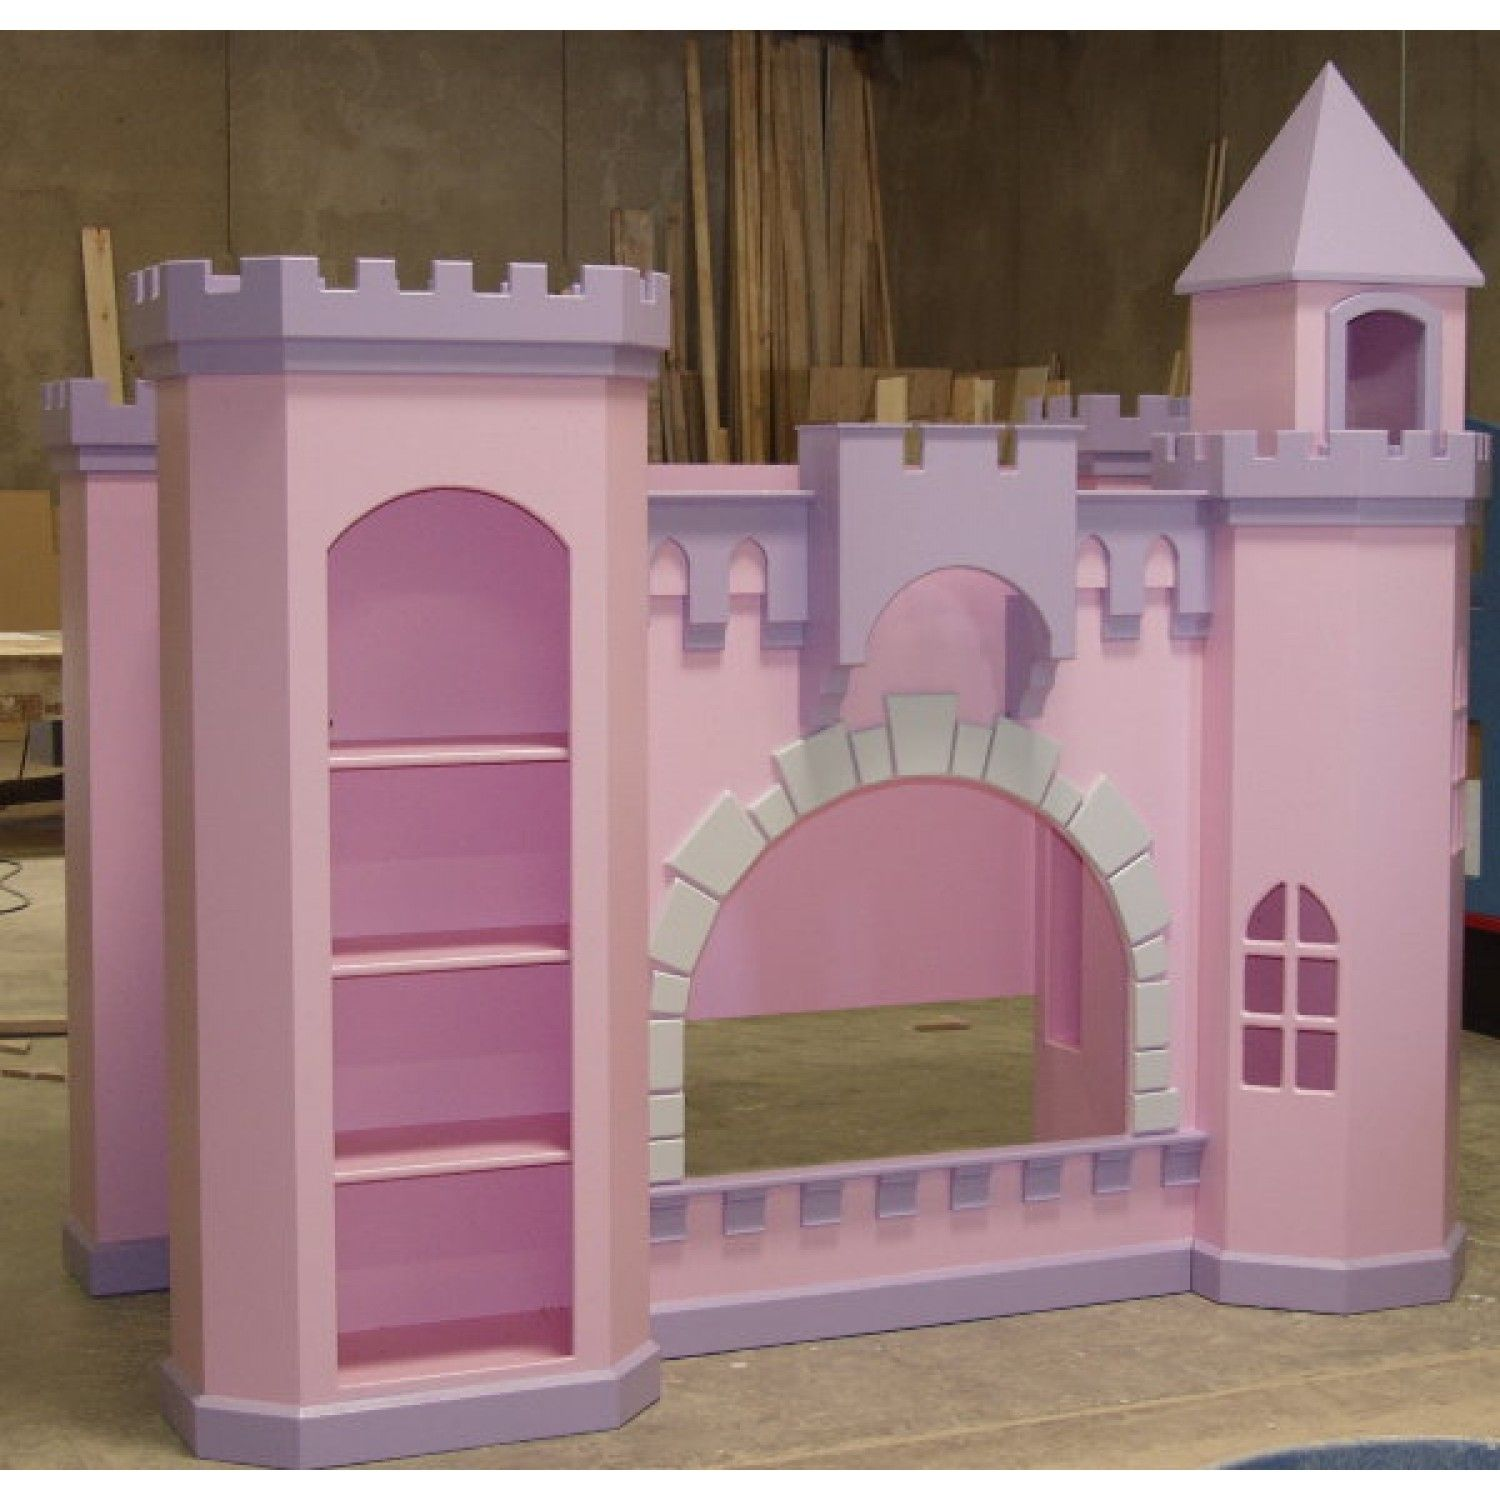 Bedroom furniture for girls castle - Castle Bunk Bed Plans Toddlers Room Is Our Pink And White Castle Bunk Bed With Slide Handy With Tools Build One Of Our Luxurious Children S Castle Beds